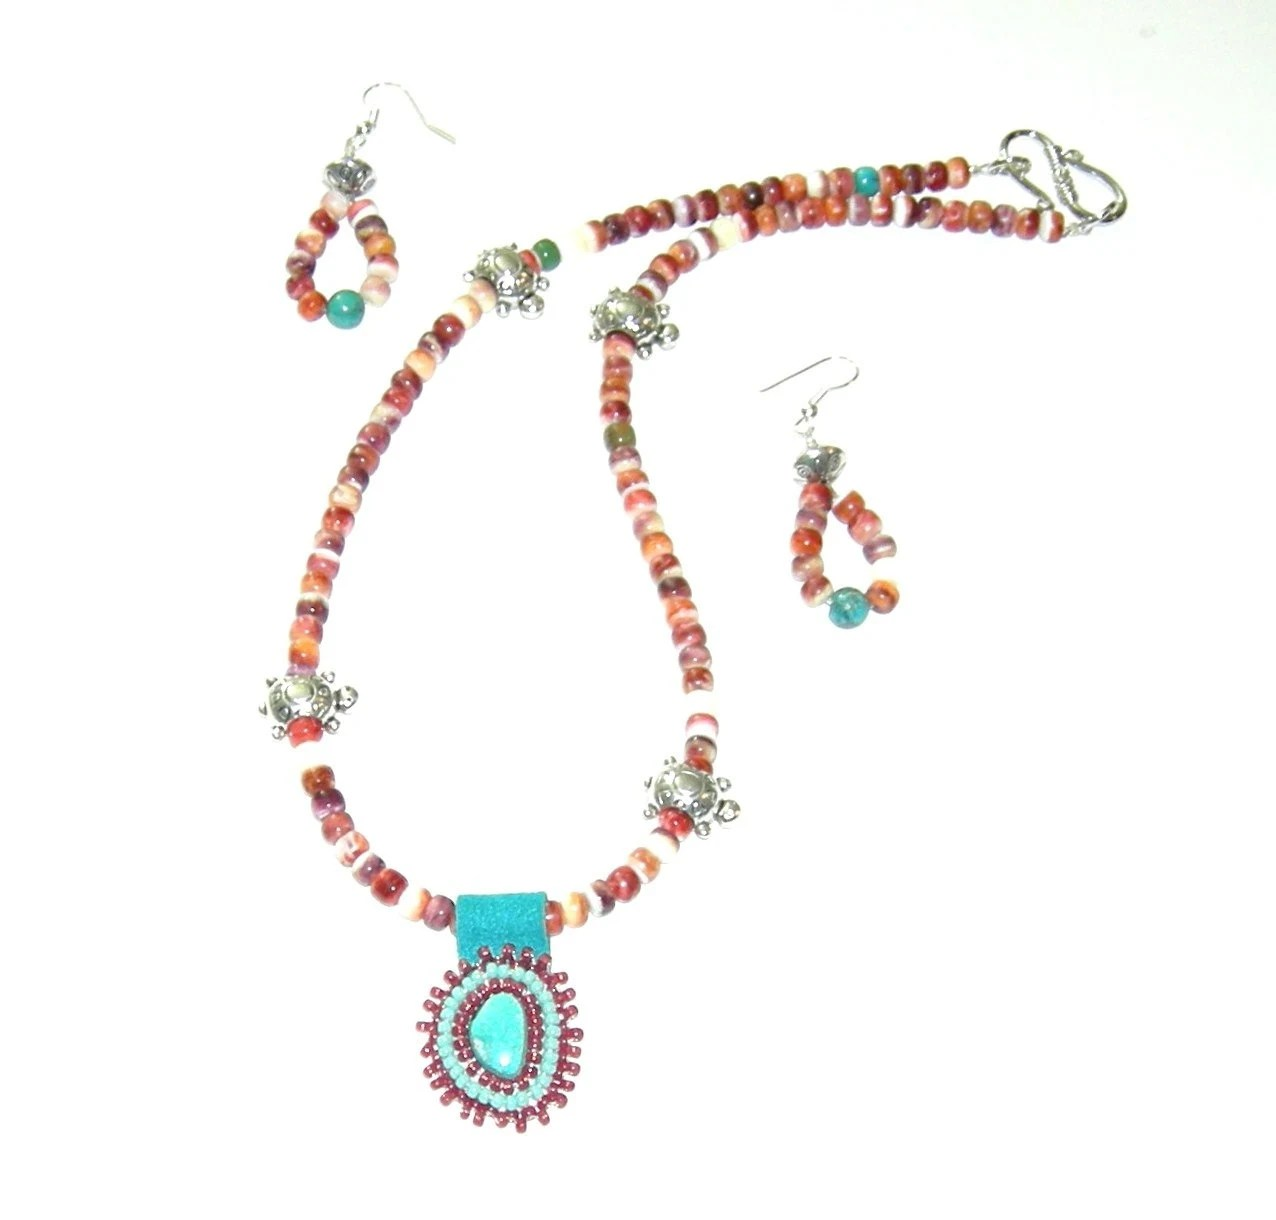 Spiny Oyster turquoise pendant necklace earrings set